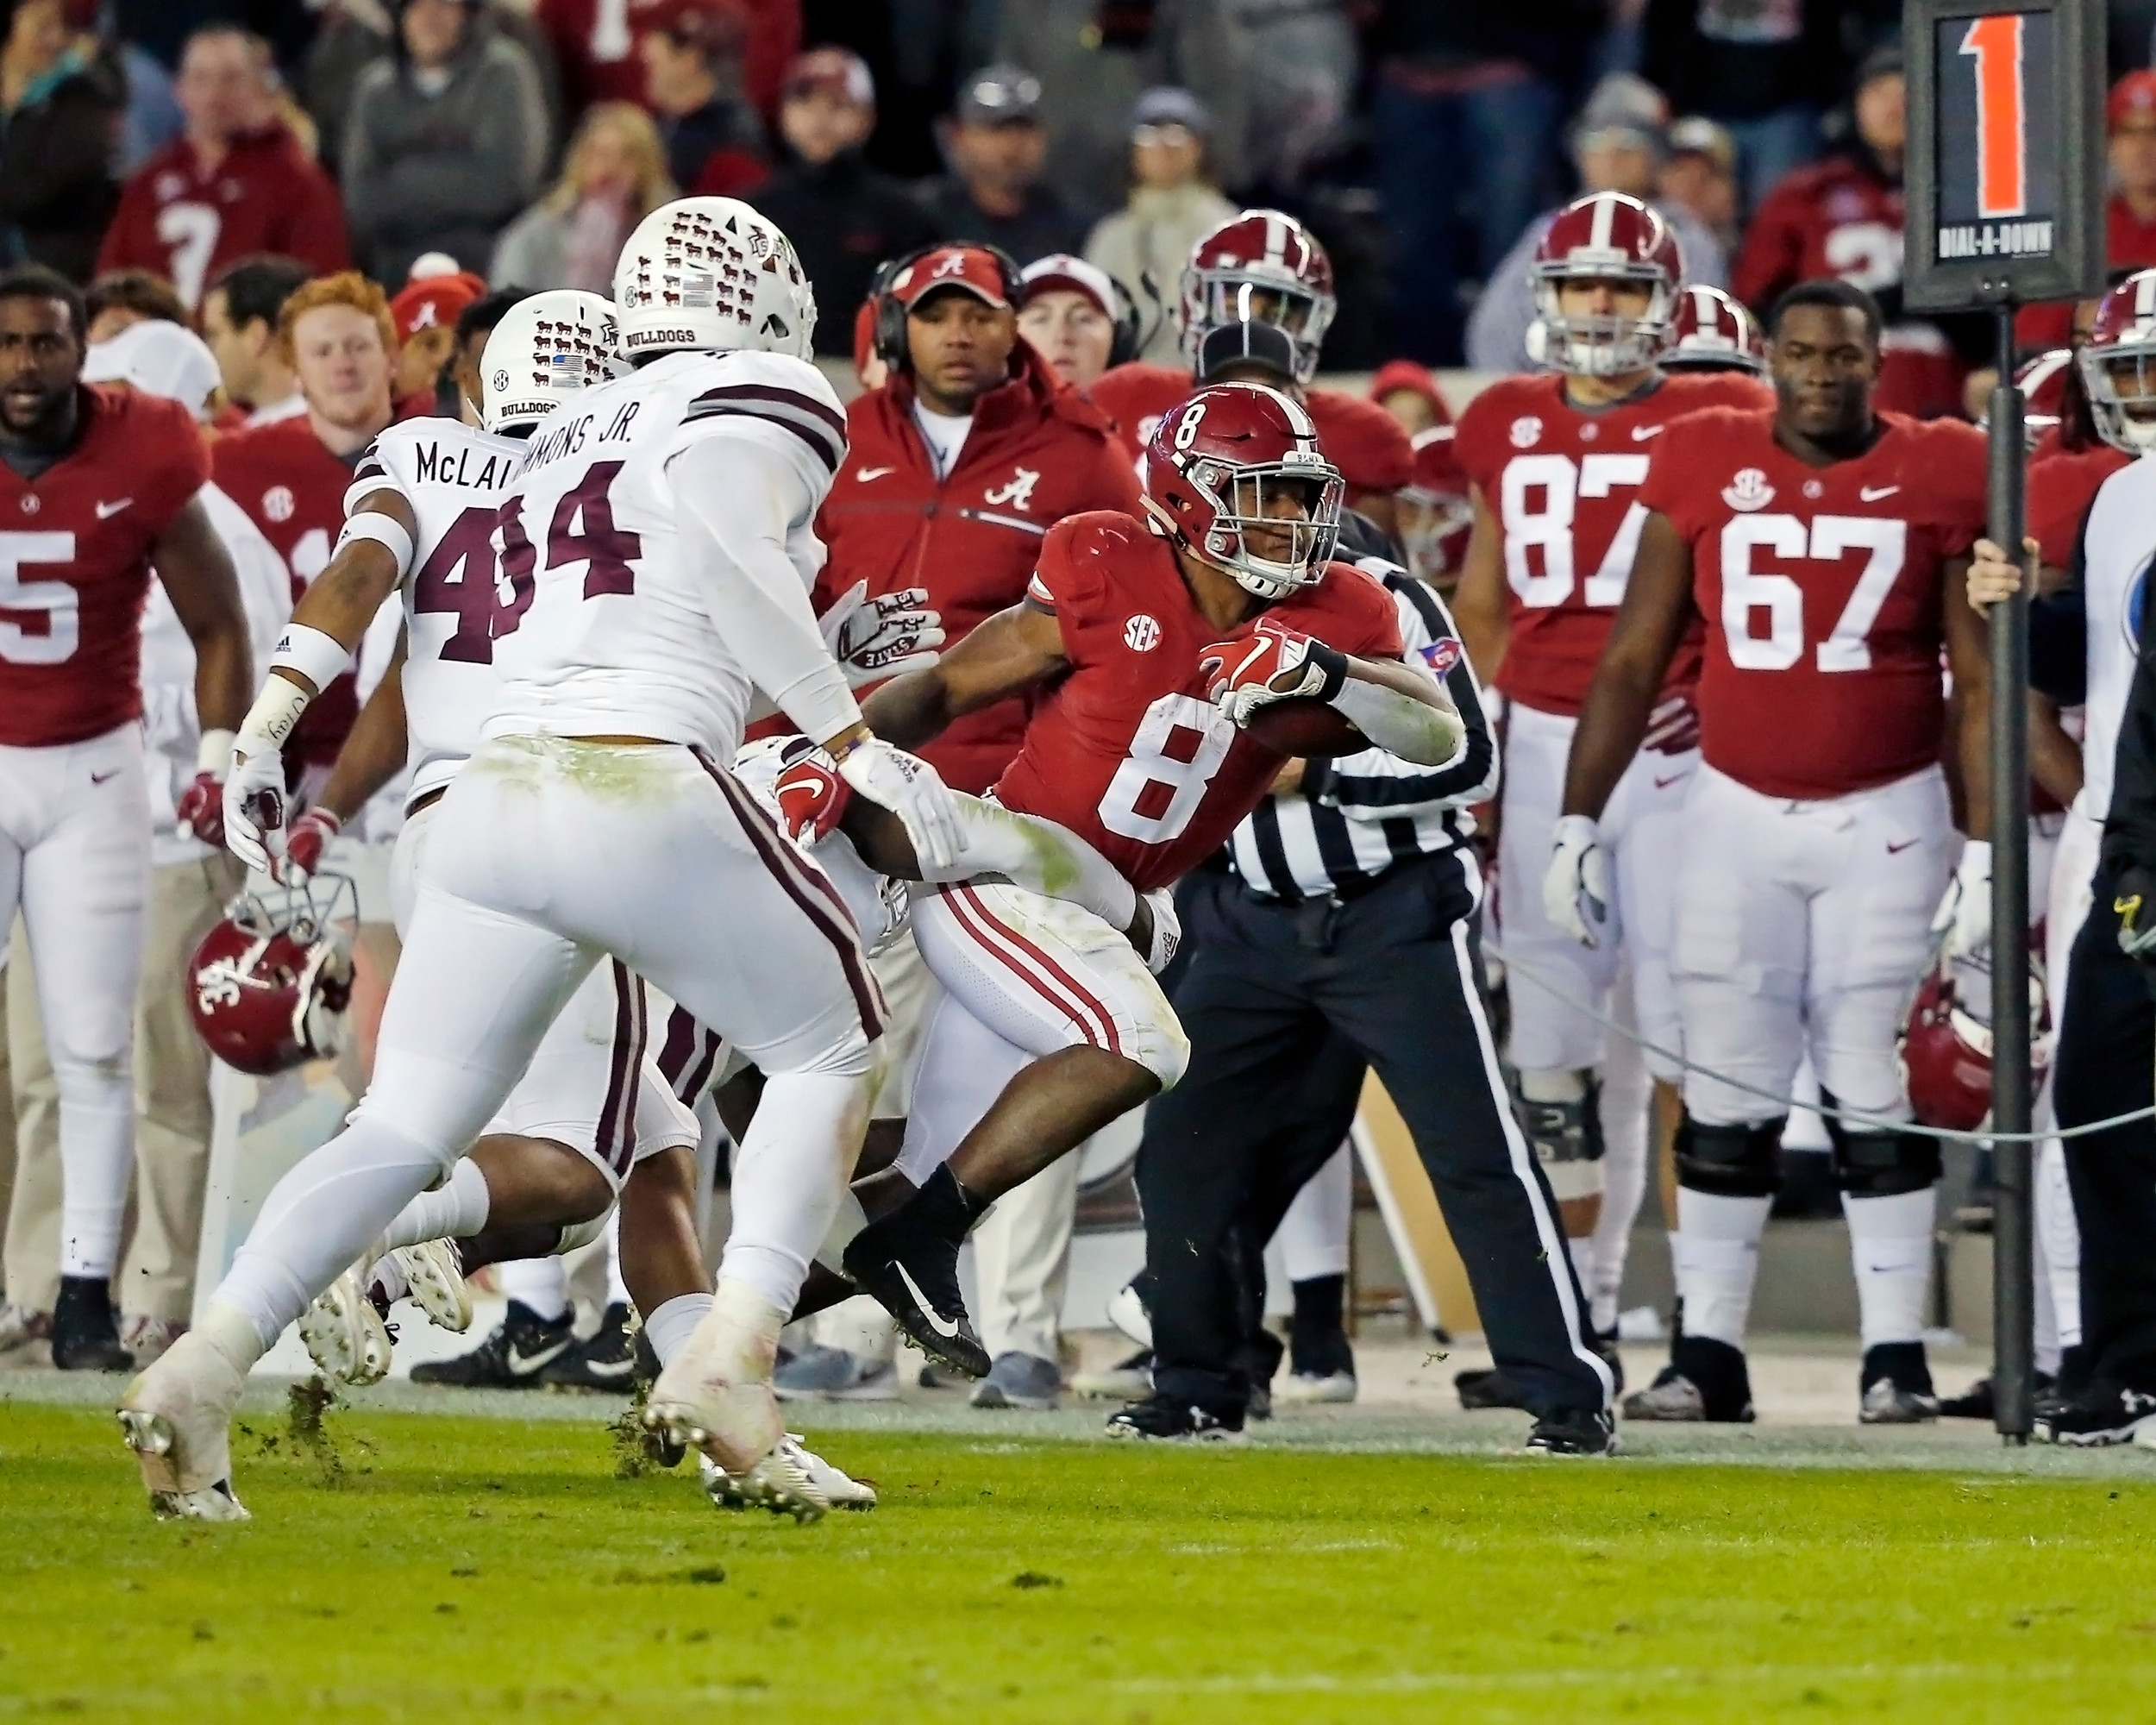 Alabama Crimson Tide running back Josh Jacobs (8) during the second half of the game between Mississippi State and the University of Alabama at Bryant-Denny Stadium in Tuscaloosa, Al. Credit: Jason Clark / Daily Mountain Eagle